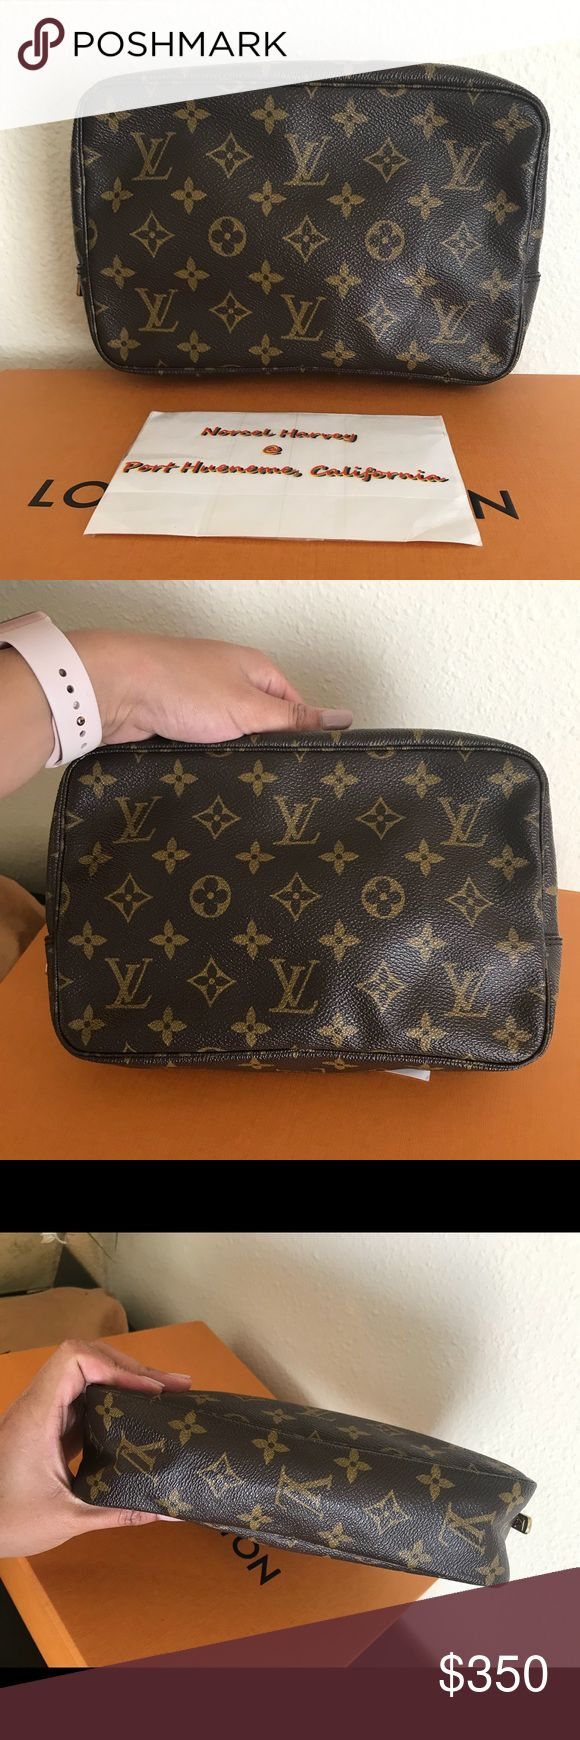 Authentic louis vuitton trousse 23 For Sale! Authentic preloved Louis vuitton Trousse 23 in Monogram in excellent used condition. Pls kindly check all the photos in the comment section.  👉🏻Normal signs of usage 👉🏻inside has some minimal wear 👉🏻No peeling inside 👉🏻No rip or tears or peeling outside 💕Datecode: 873 TH Louis Vuitton Bags Clutches & Wristlets